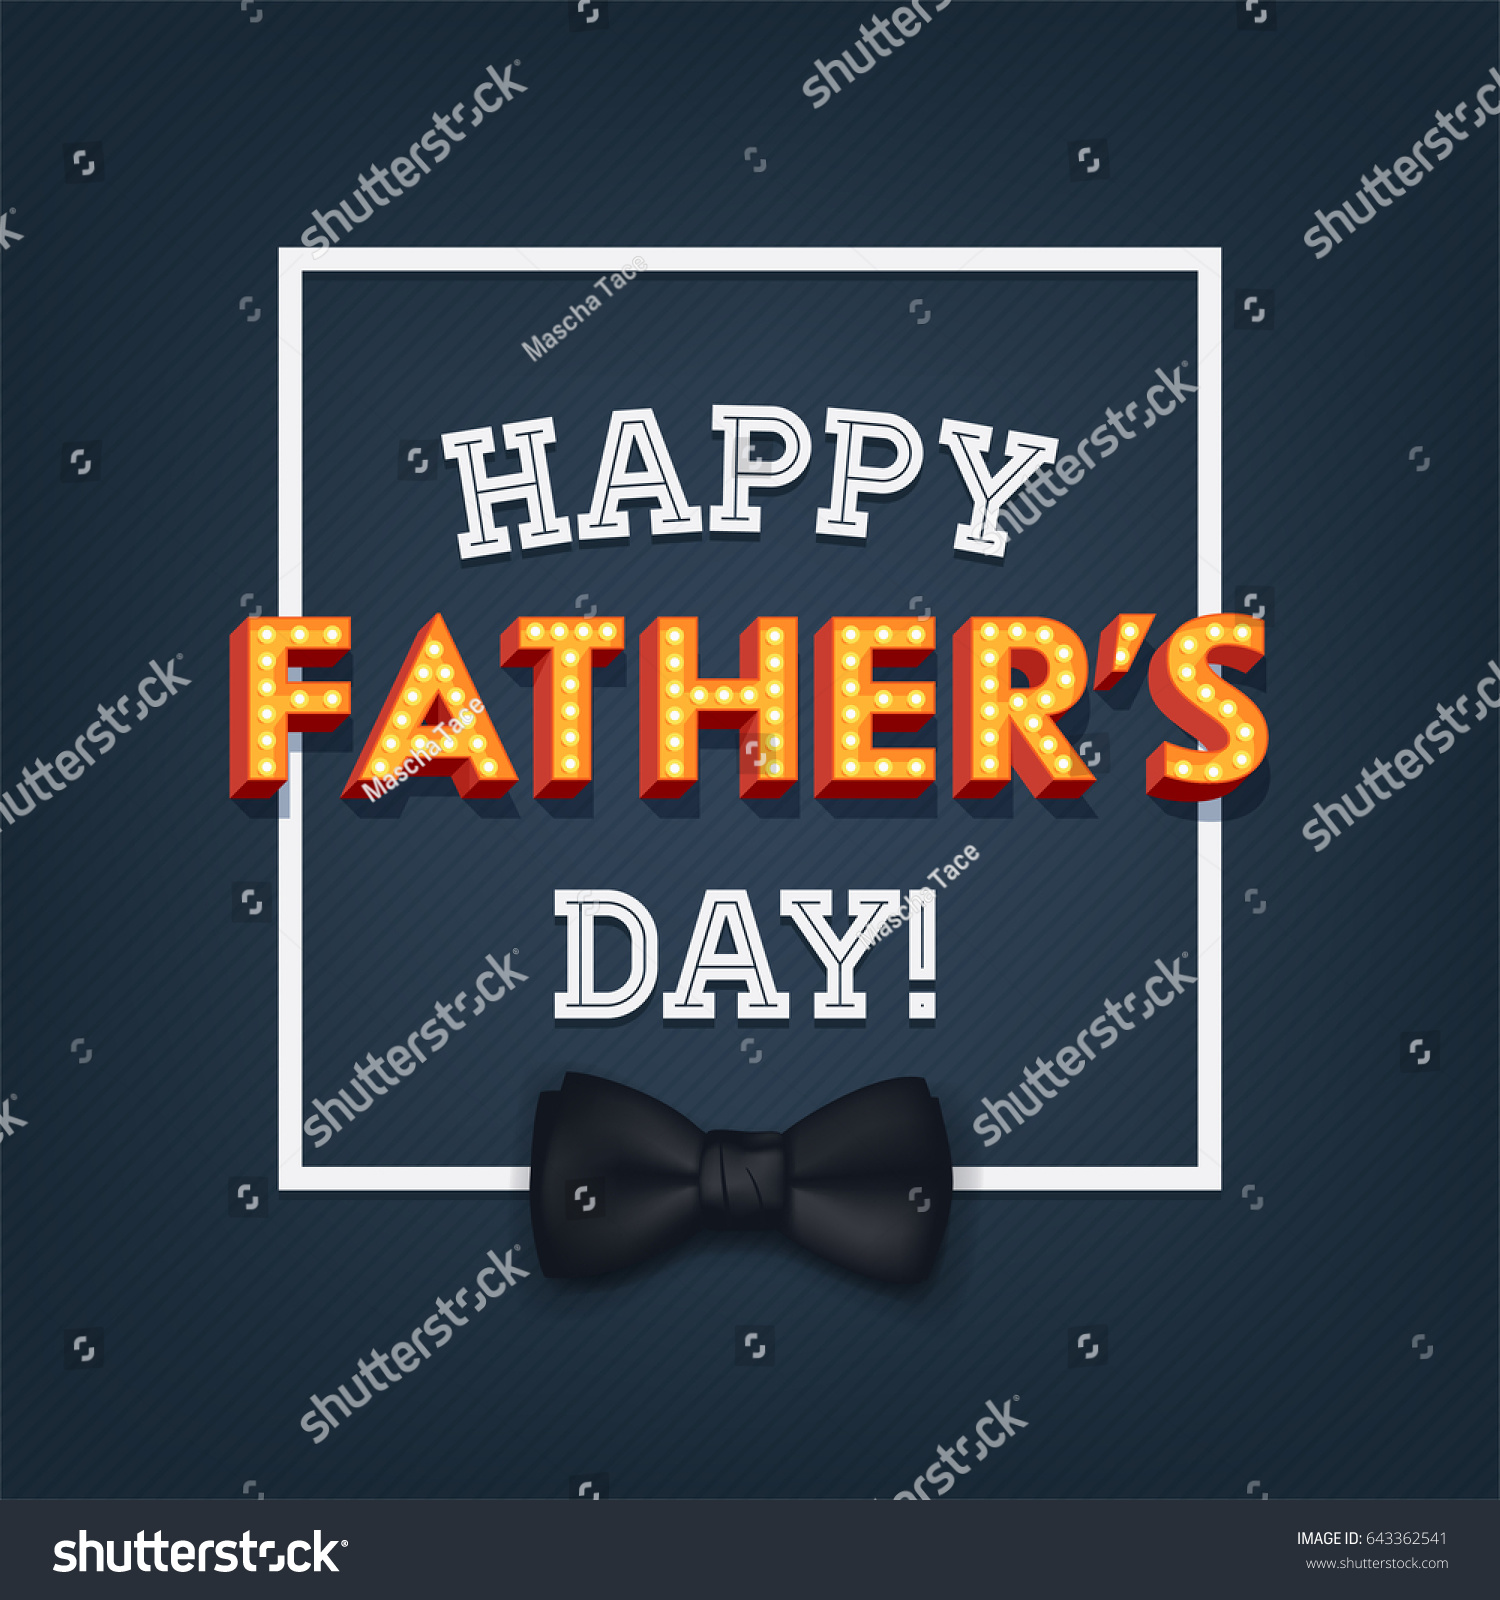 Cool vector fathers day greeting card stock vector royalty free cool vector fathers day greeting card or web banner design with lit up marquee volumetric letters m4hsunfo